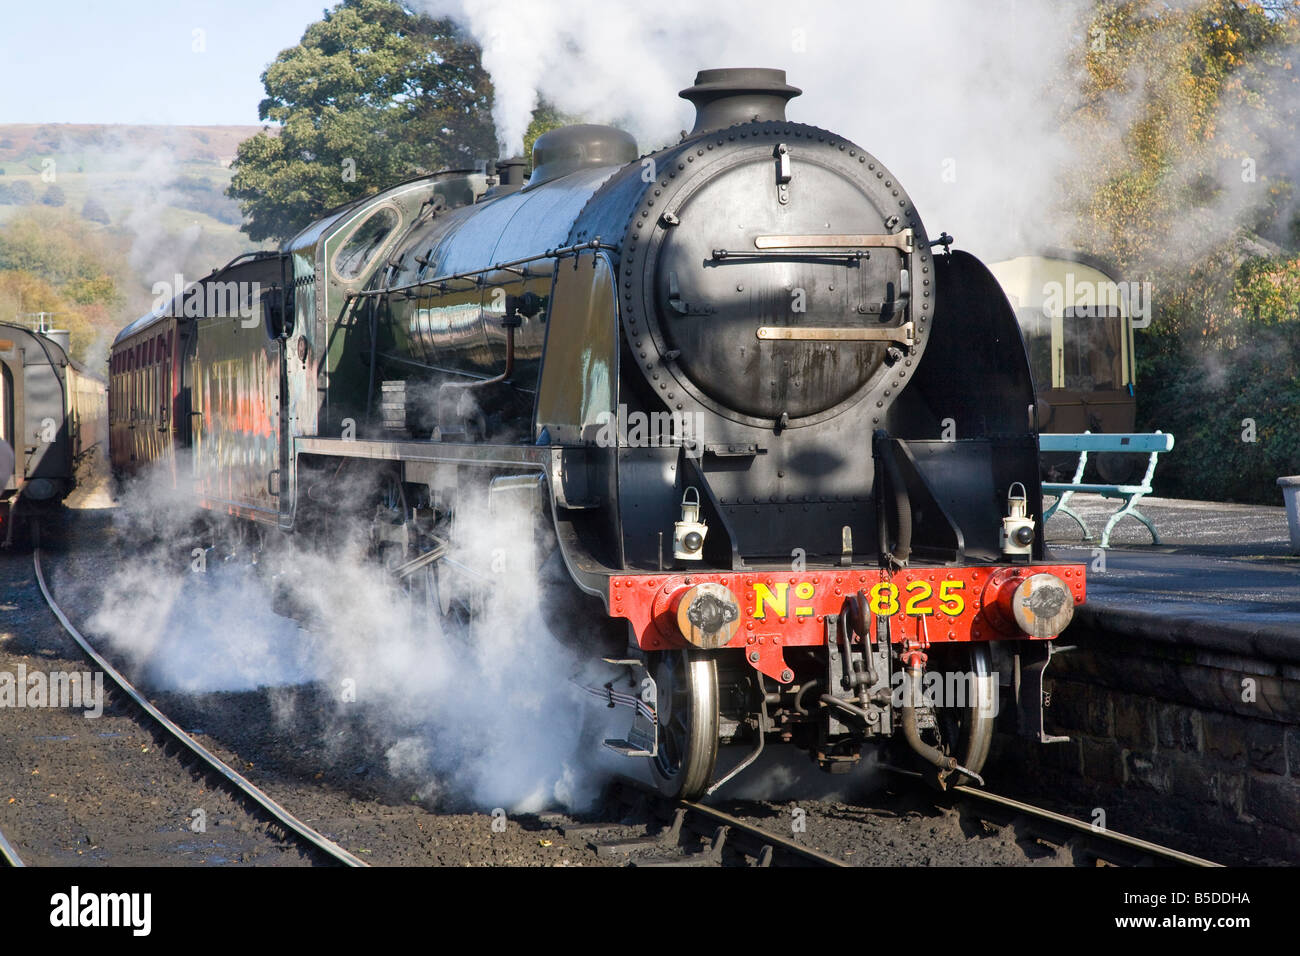 Grosmont station platform - 1930s Class S15 Maunsell 4-6-0 freight train locomotive design Ex SR 825 (BR 30825). - Stock Image